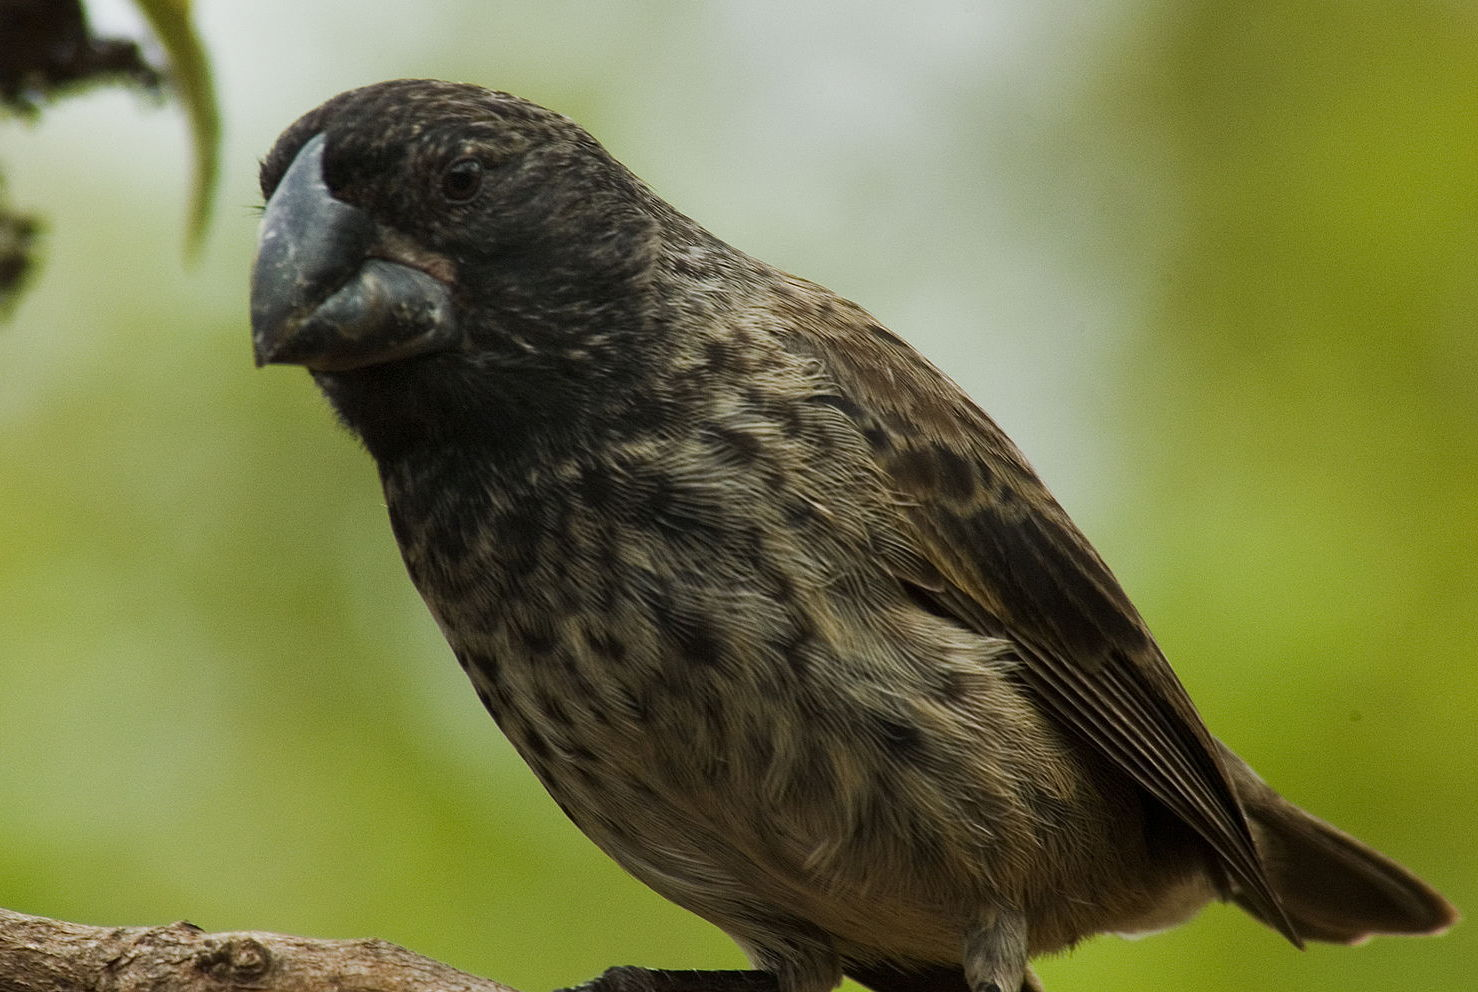 Photo of a finch bird